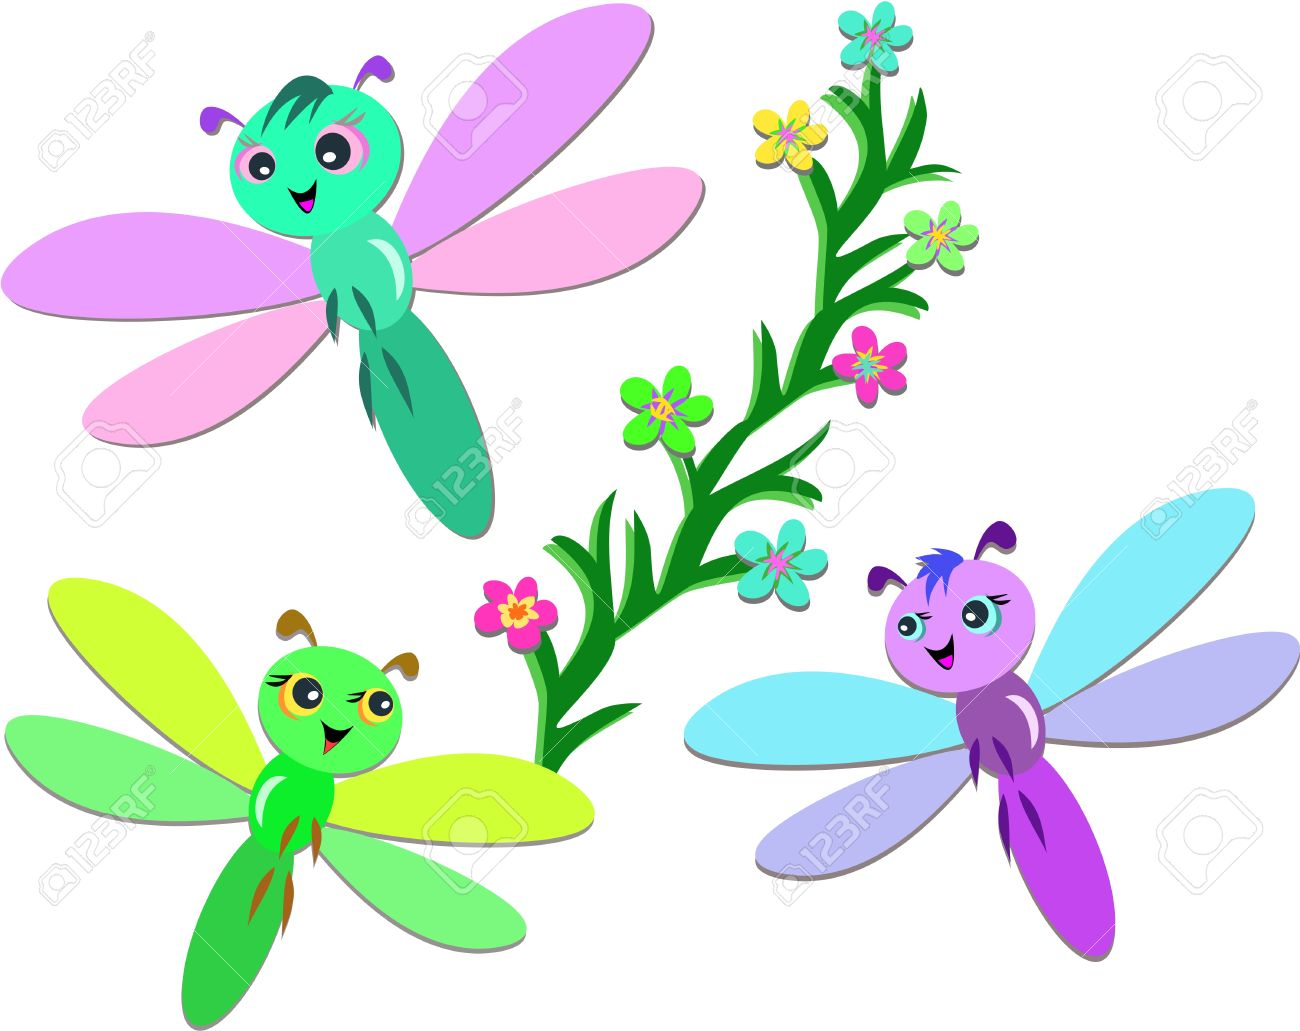 Cute Dragonfly Clipart Trio of Cute Dragonflies